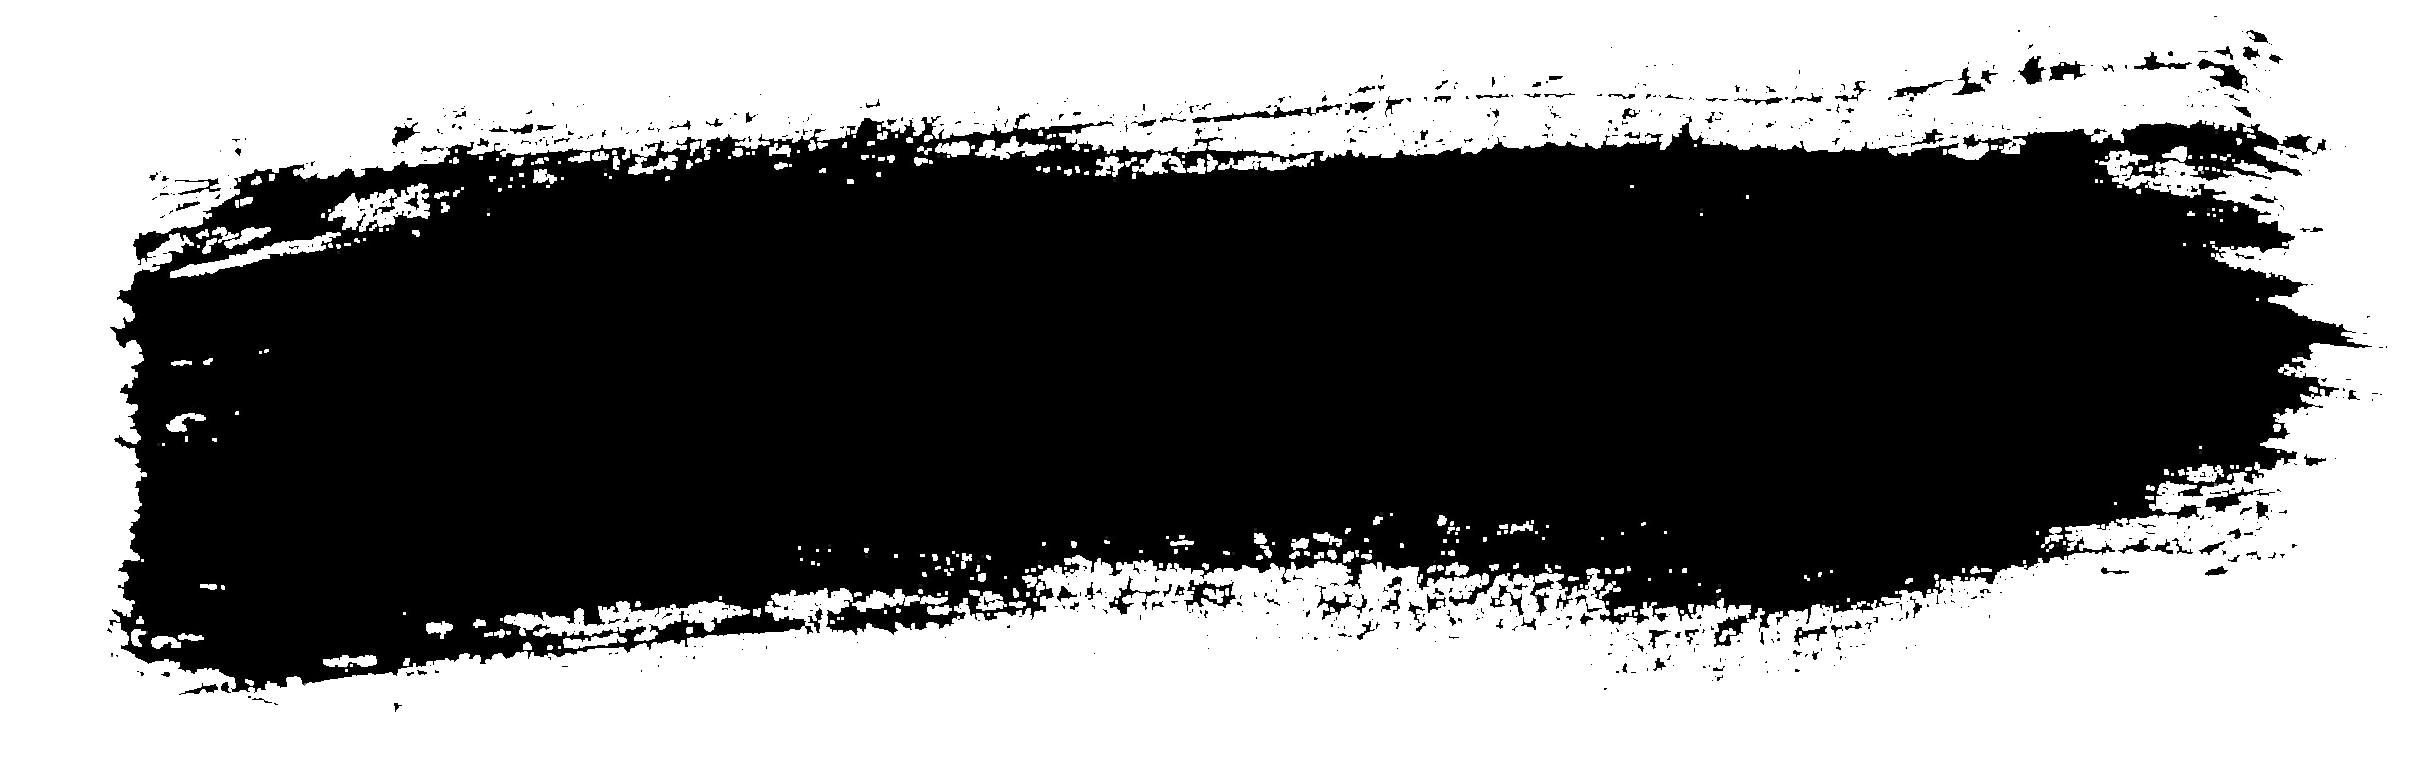 grunge banner transparent. Paint brush stroke png picture stock